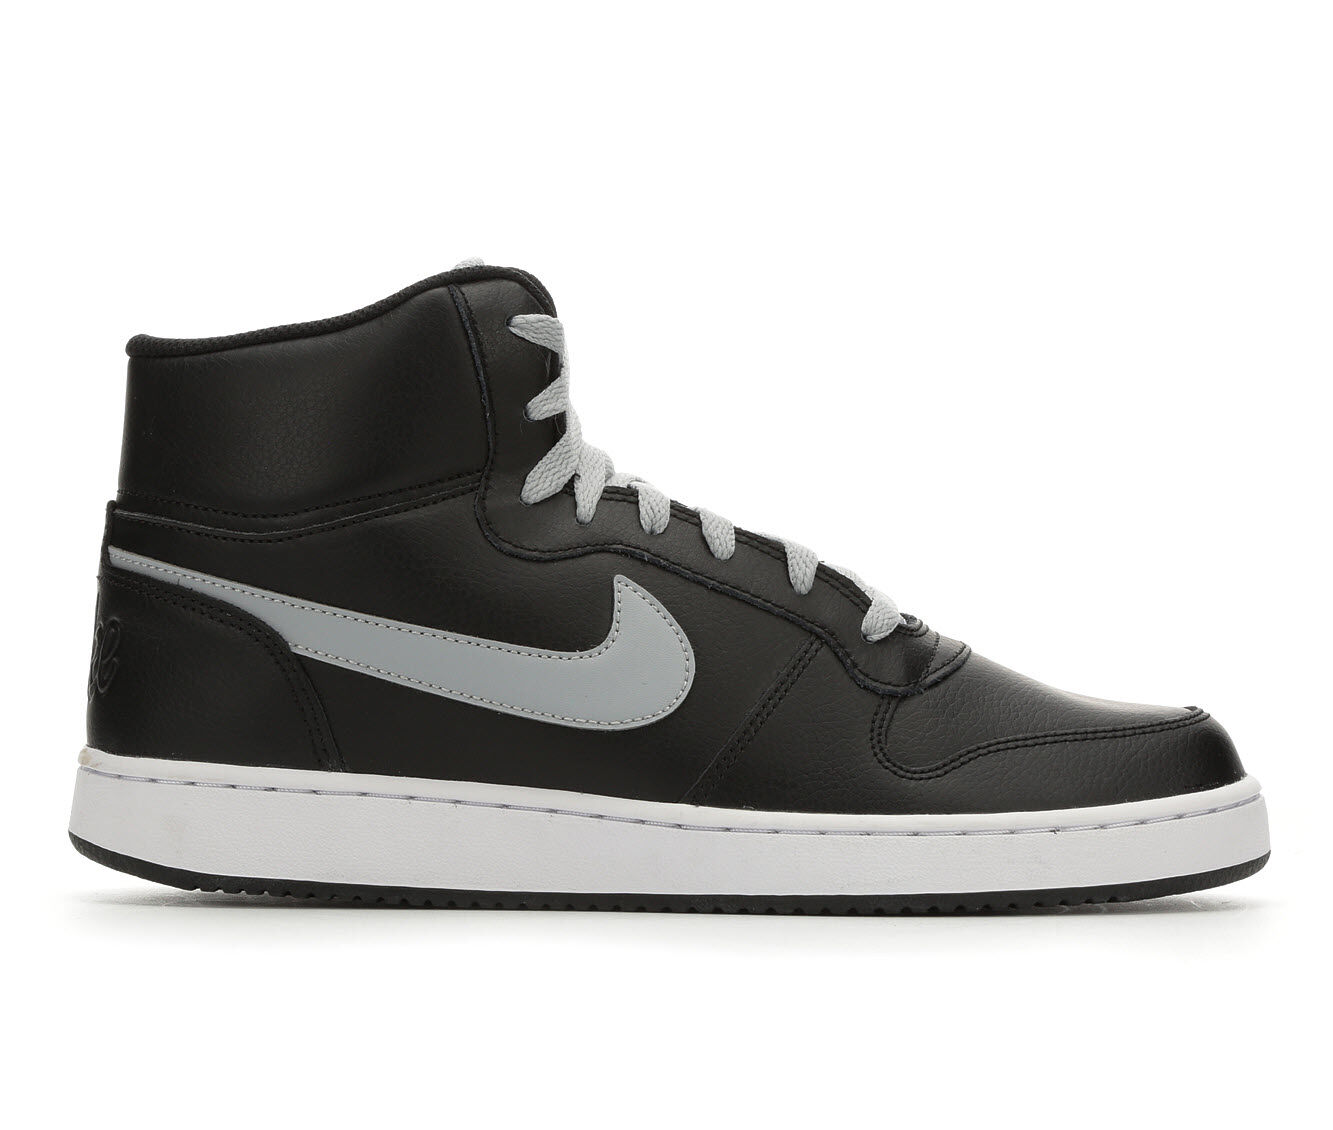 cheapest new arrivals Men's Nike Ebernon Mid Sneakers Blk/Gry/Wht 006